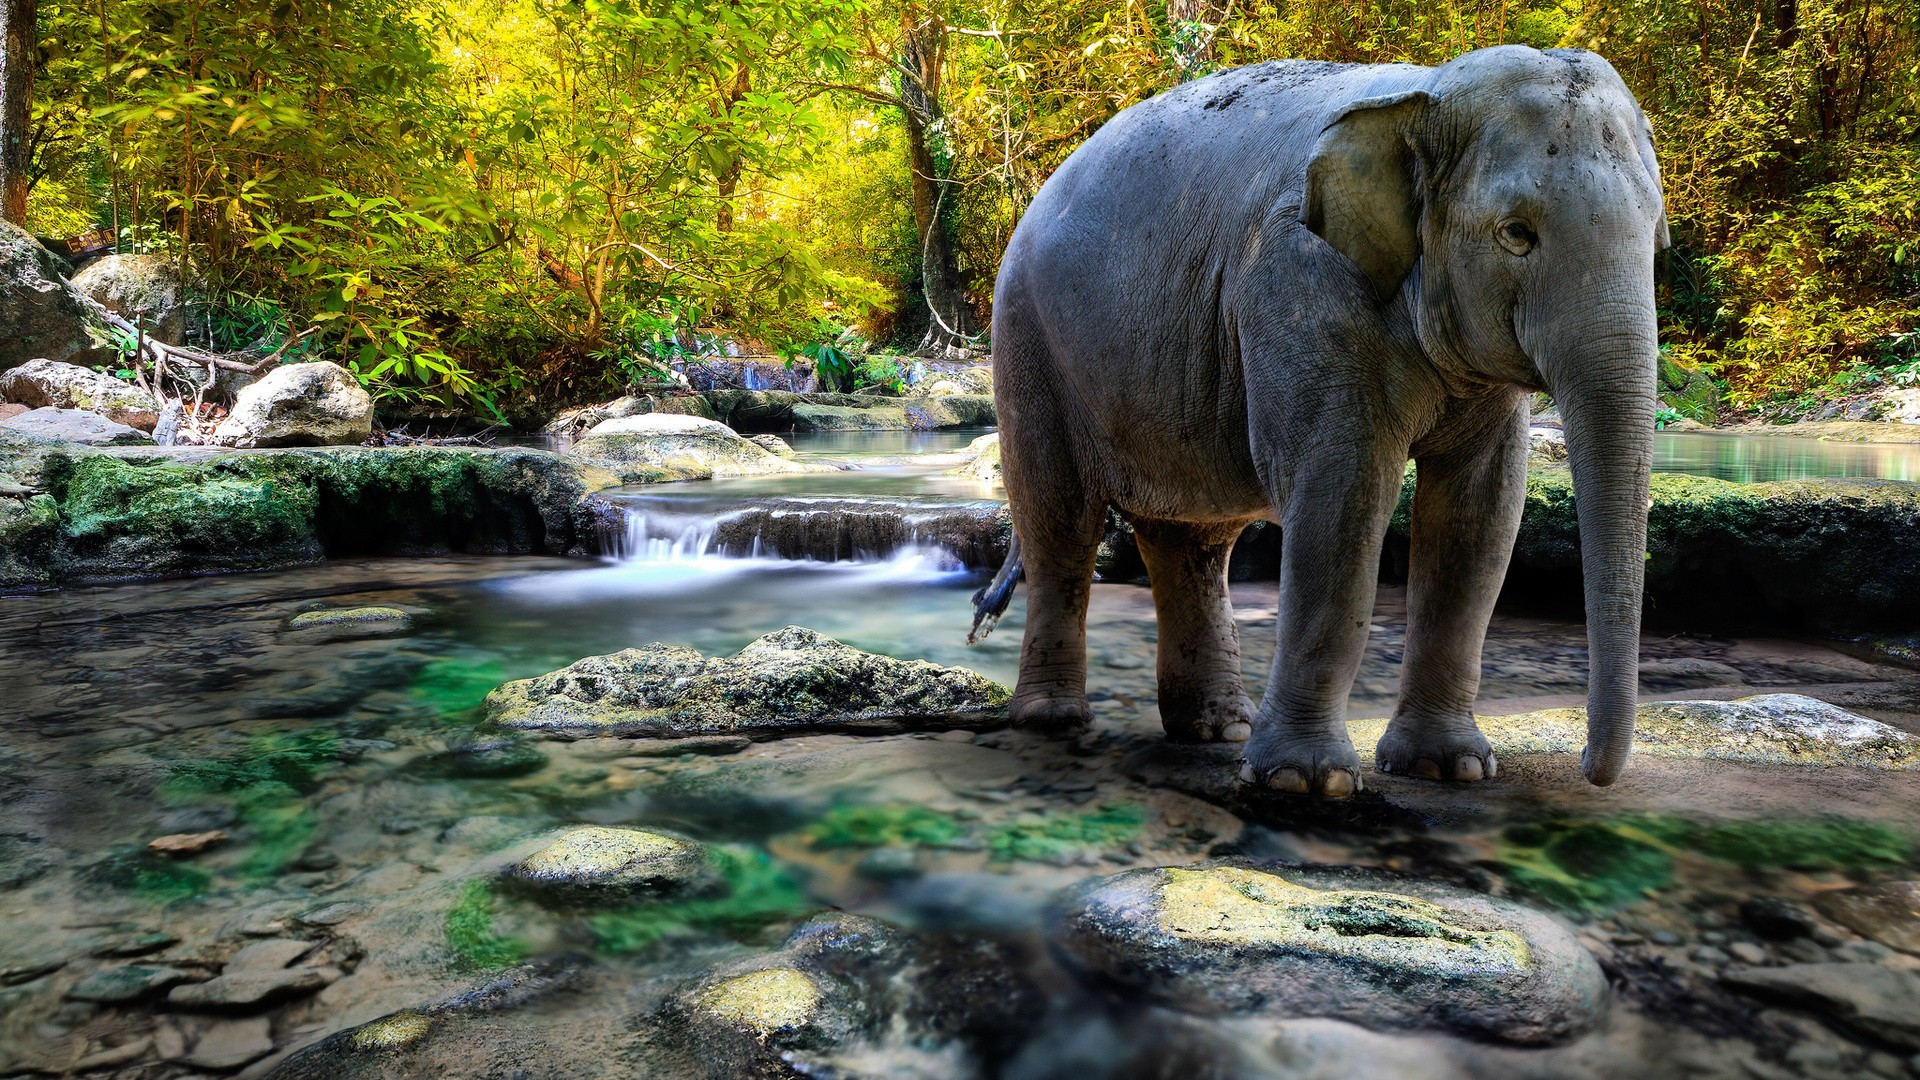 3d Wallpapers For Home Screen Elephants River Nature Animals Wallpapers Hd Desktop